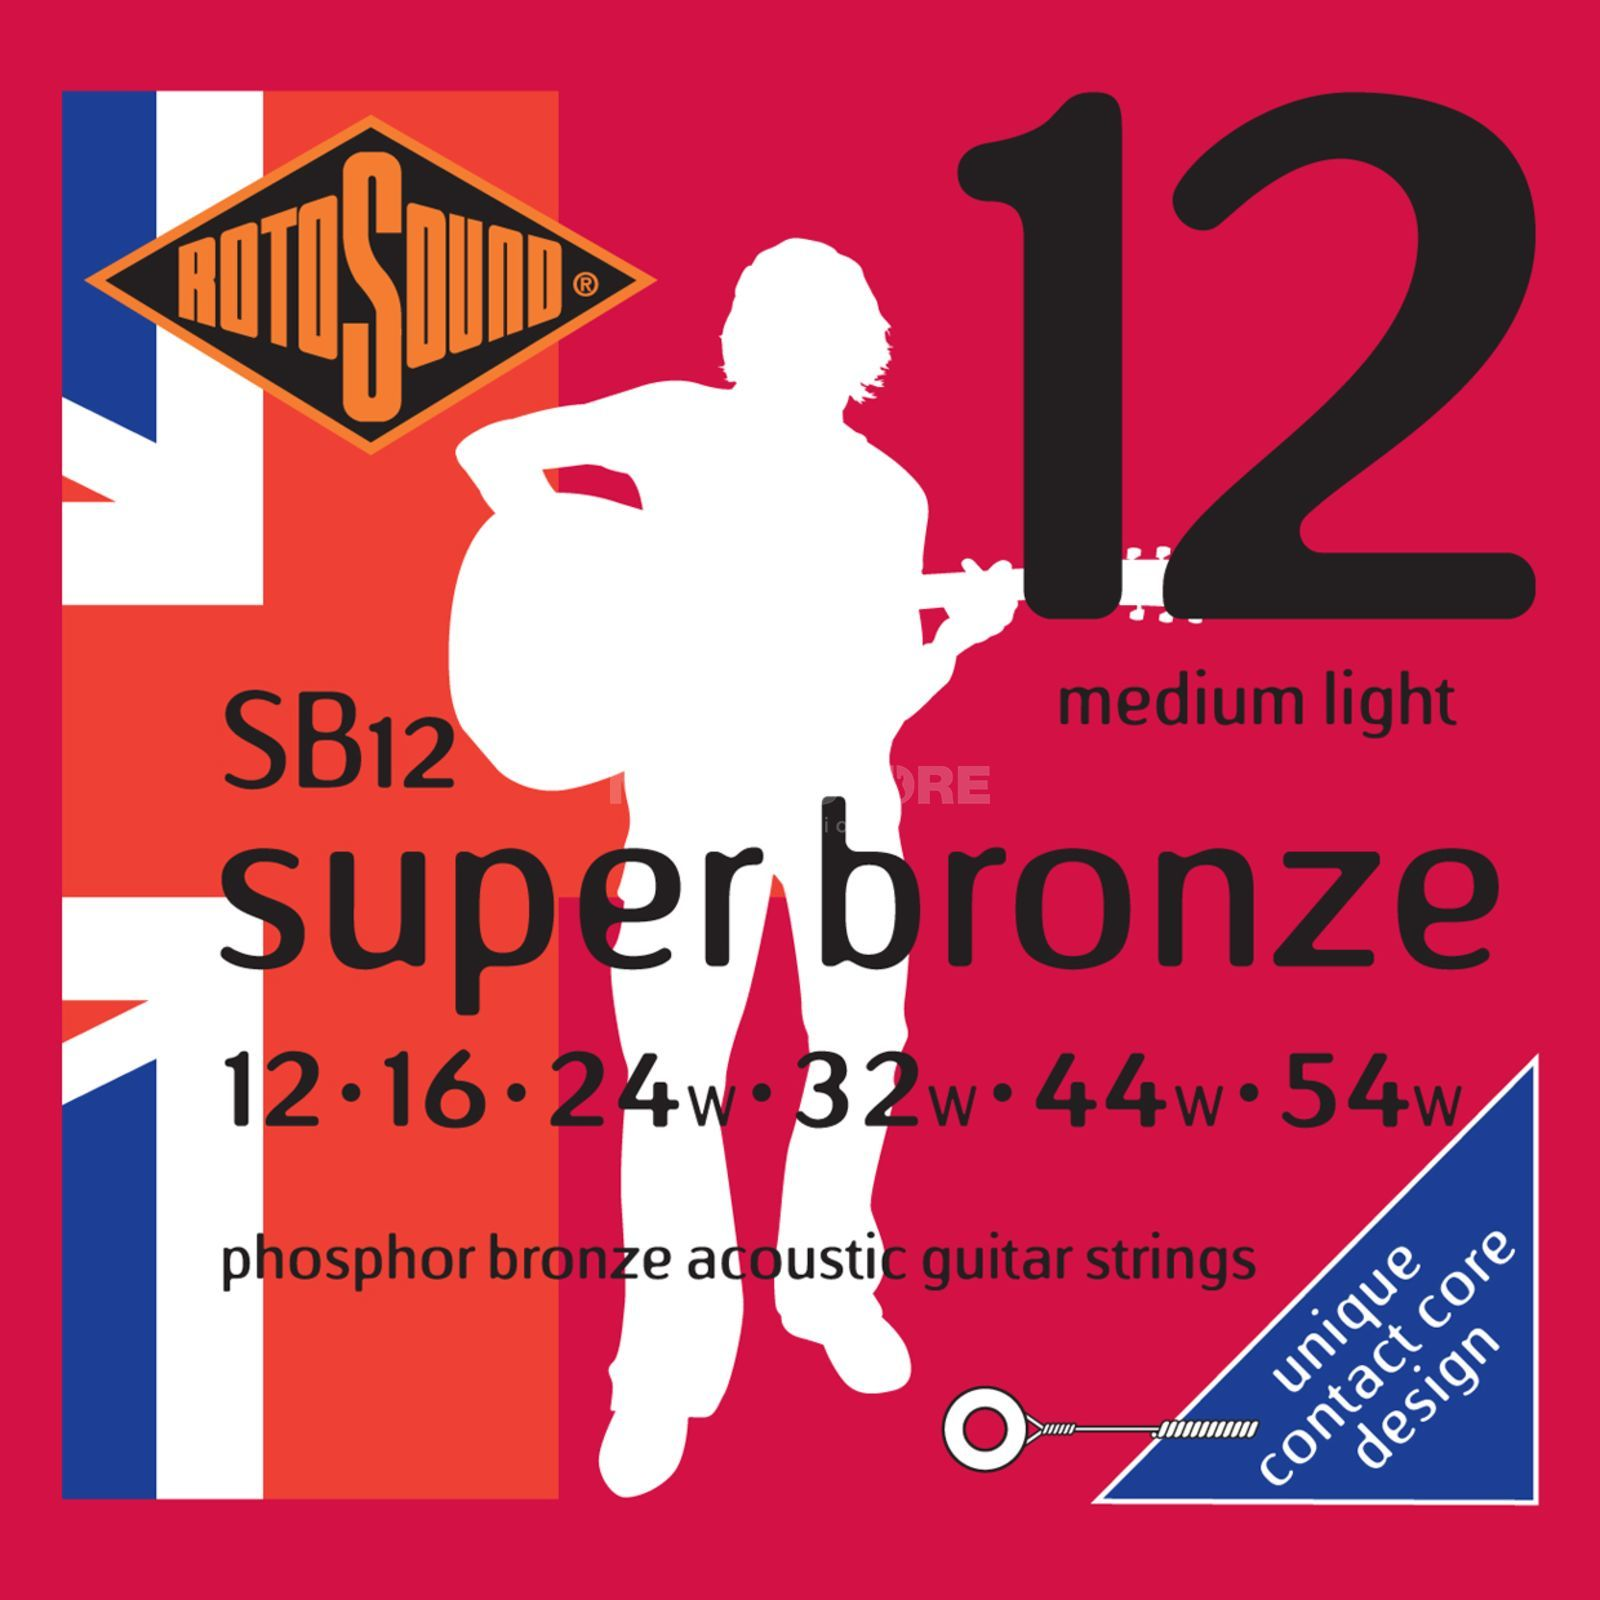 Rotosound Super Bronze SB12 12-54 Contact Core Phosphor Bronze Productafbeelding